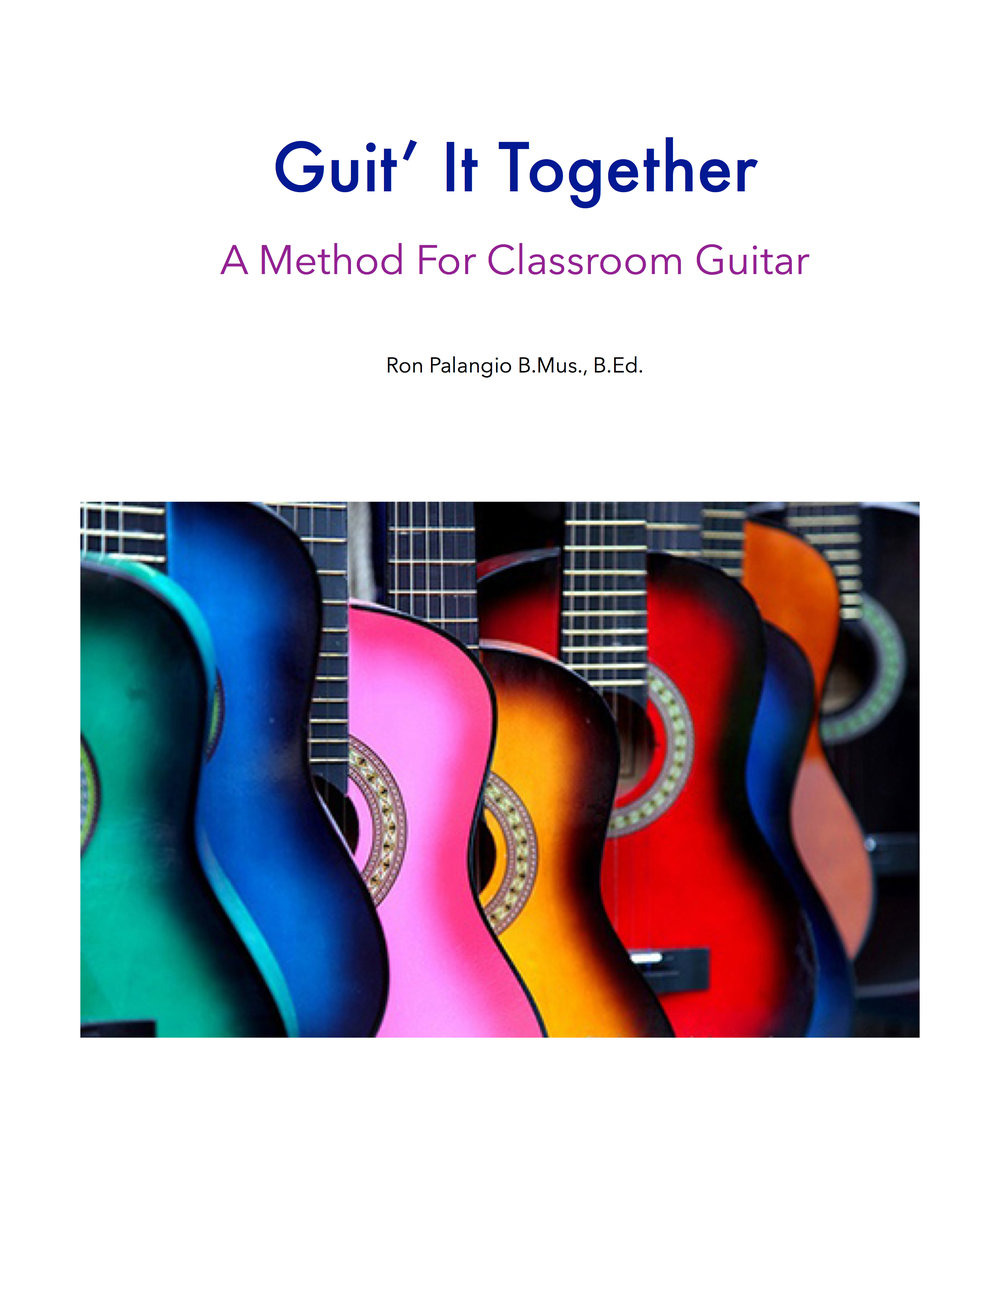 GuitItTogether.jpg